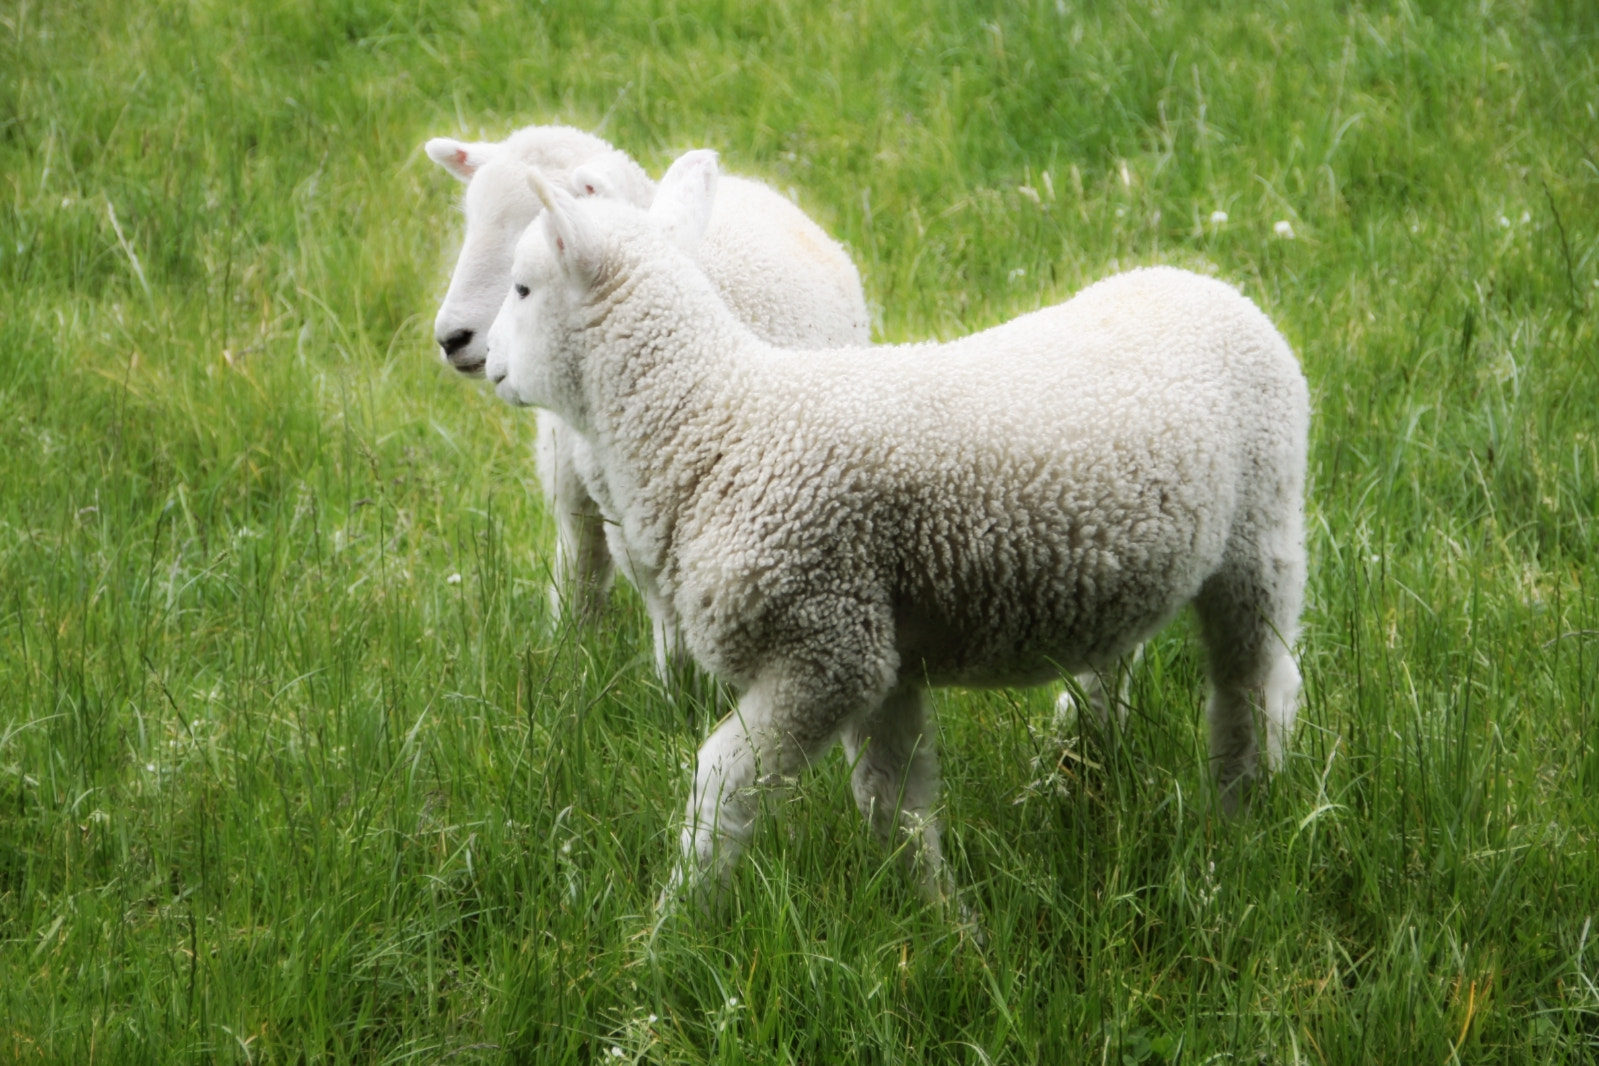 Photograph Two Playful Lambs by Carolyn Ford on 500px